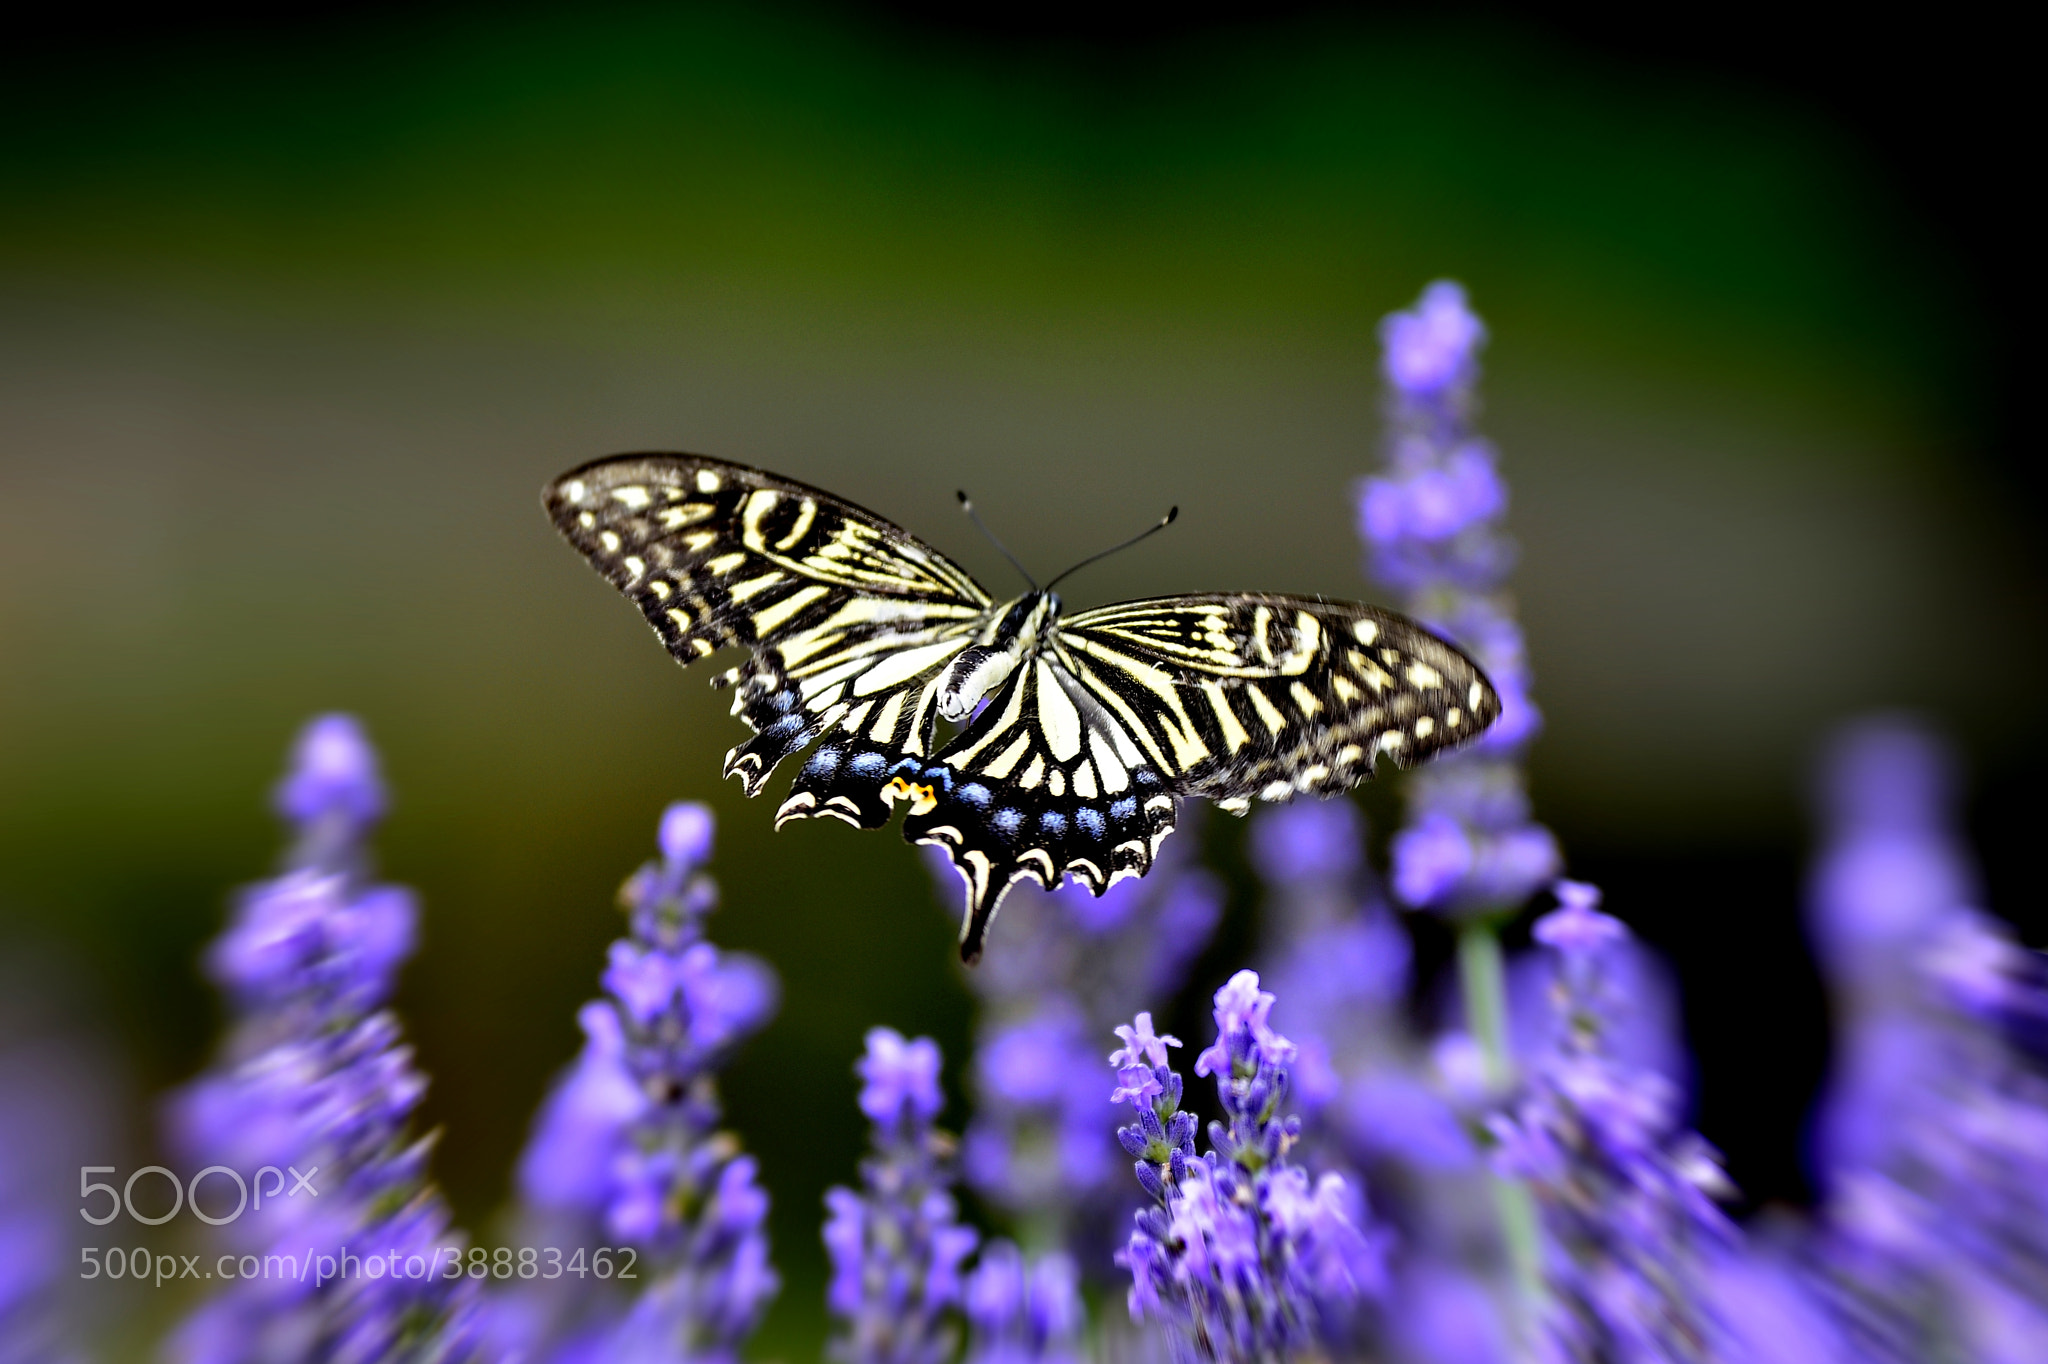 Photograph Flying Swallowtail Butterfly by Yokai Catchlight on 500px